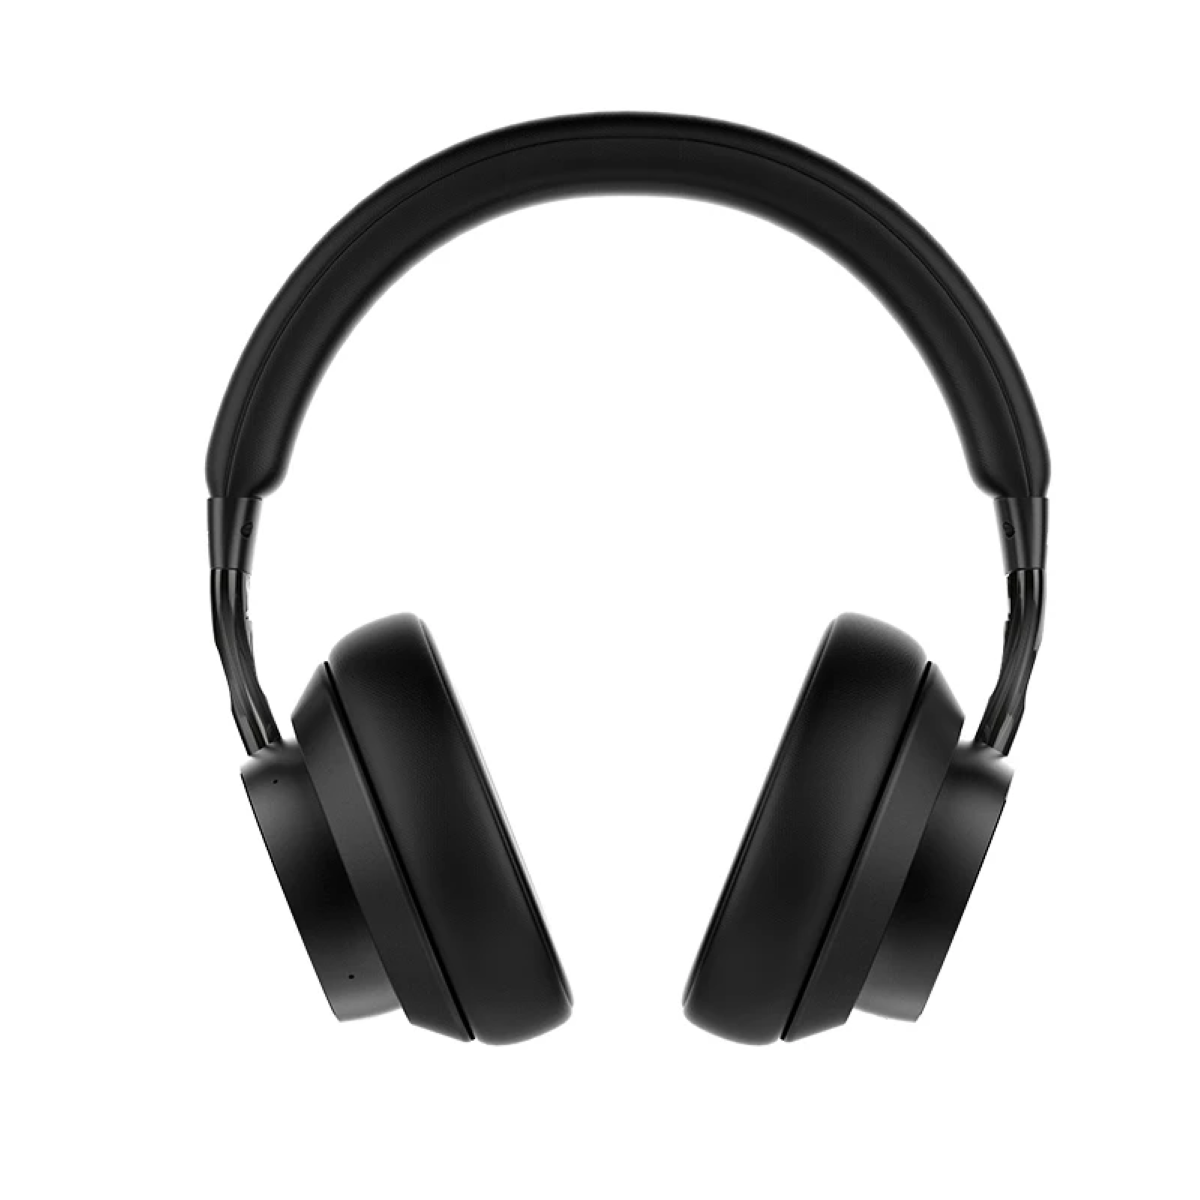 Mixcder E10 Headphones - ANC Technology